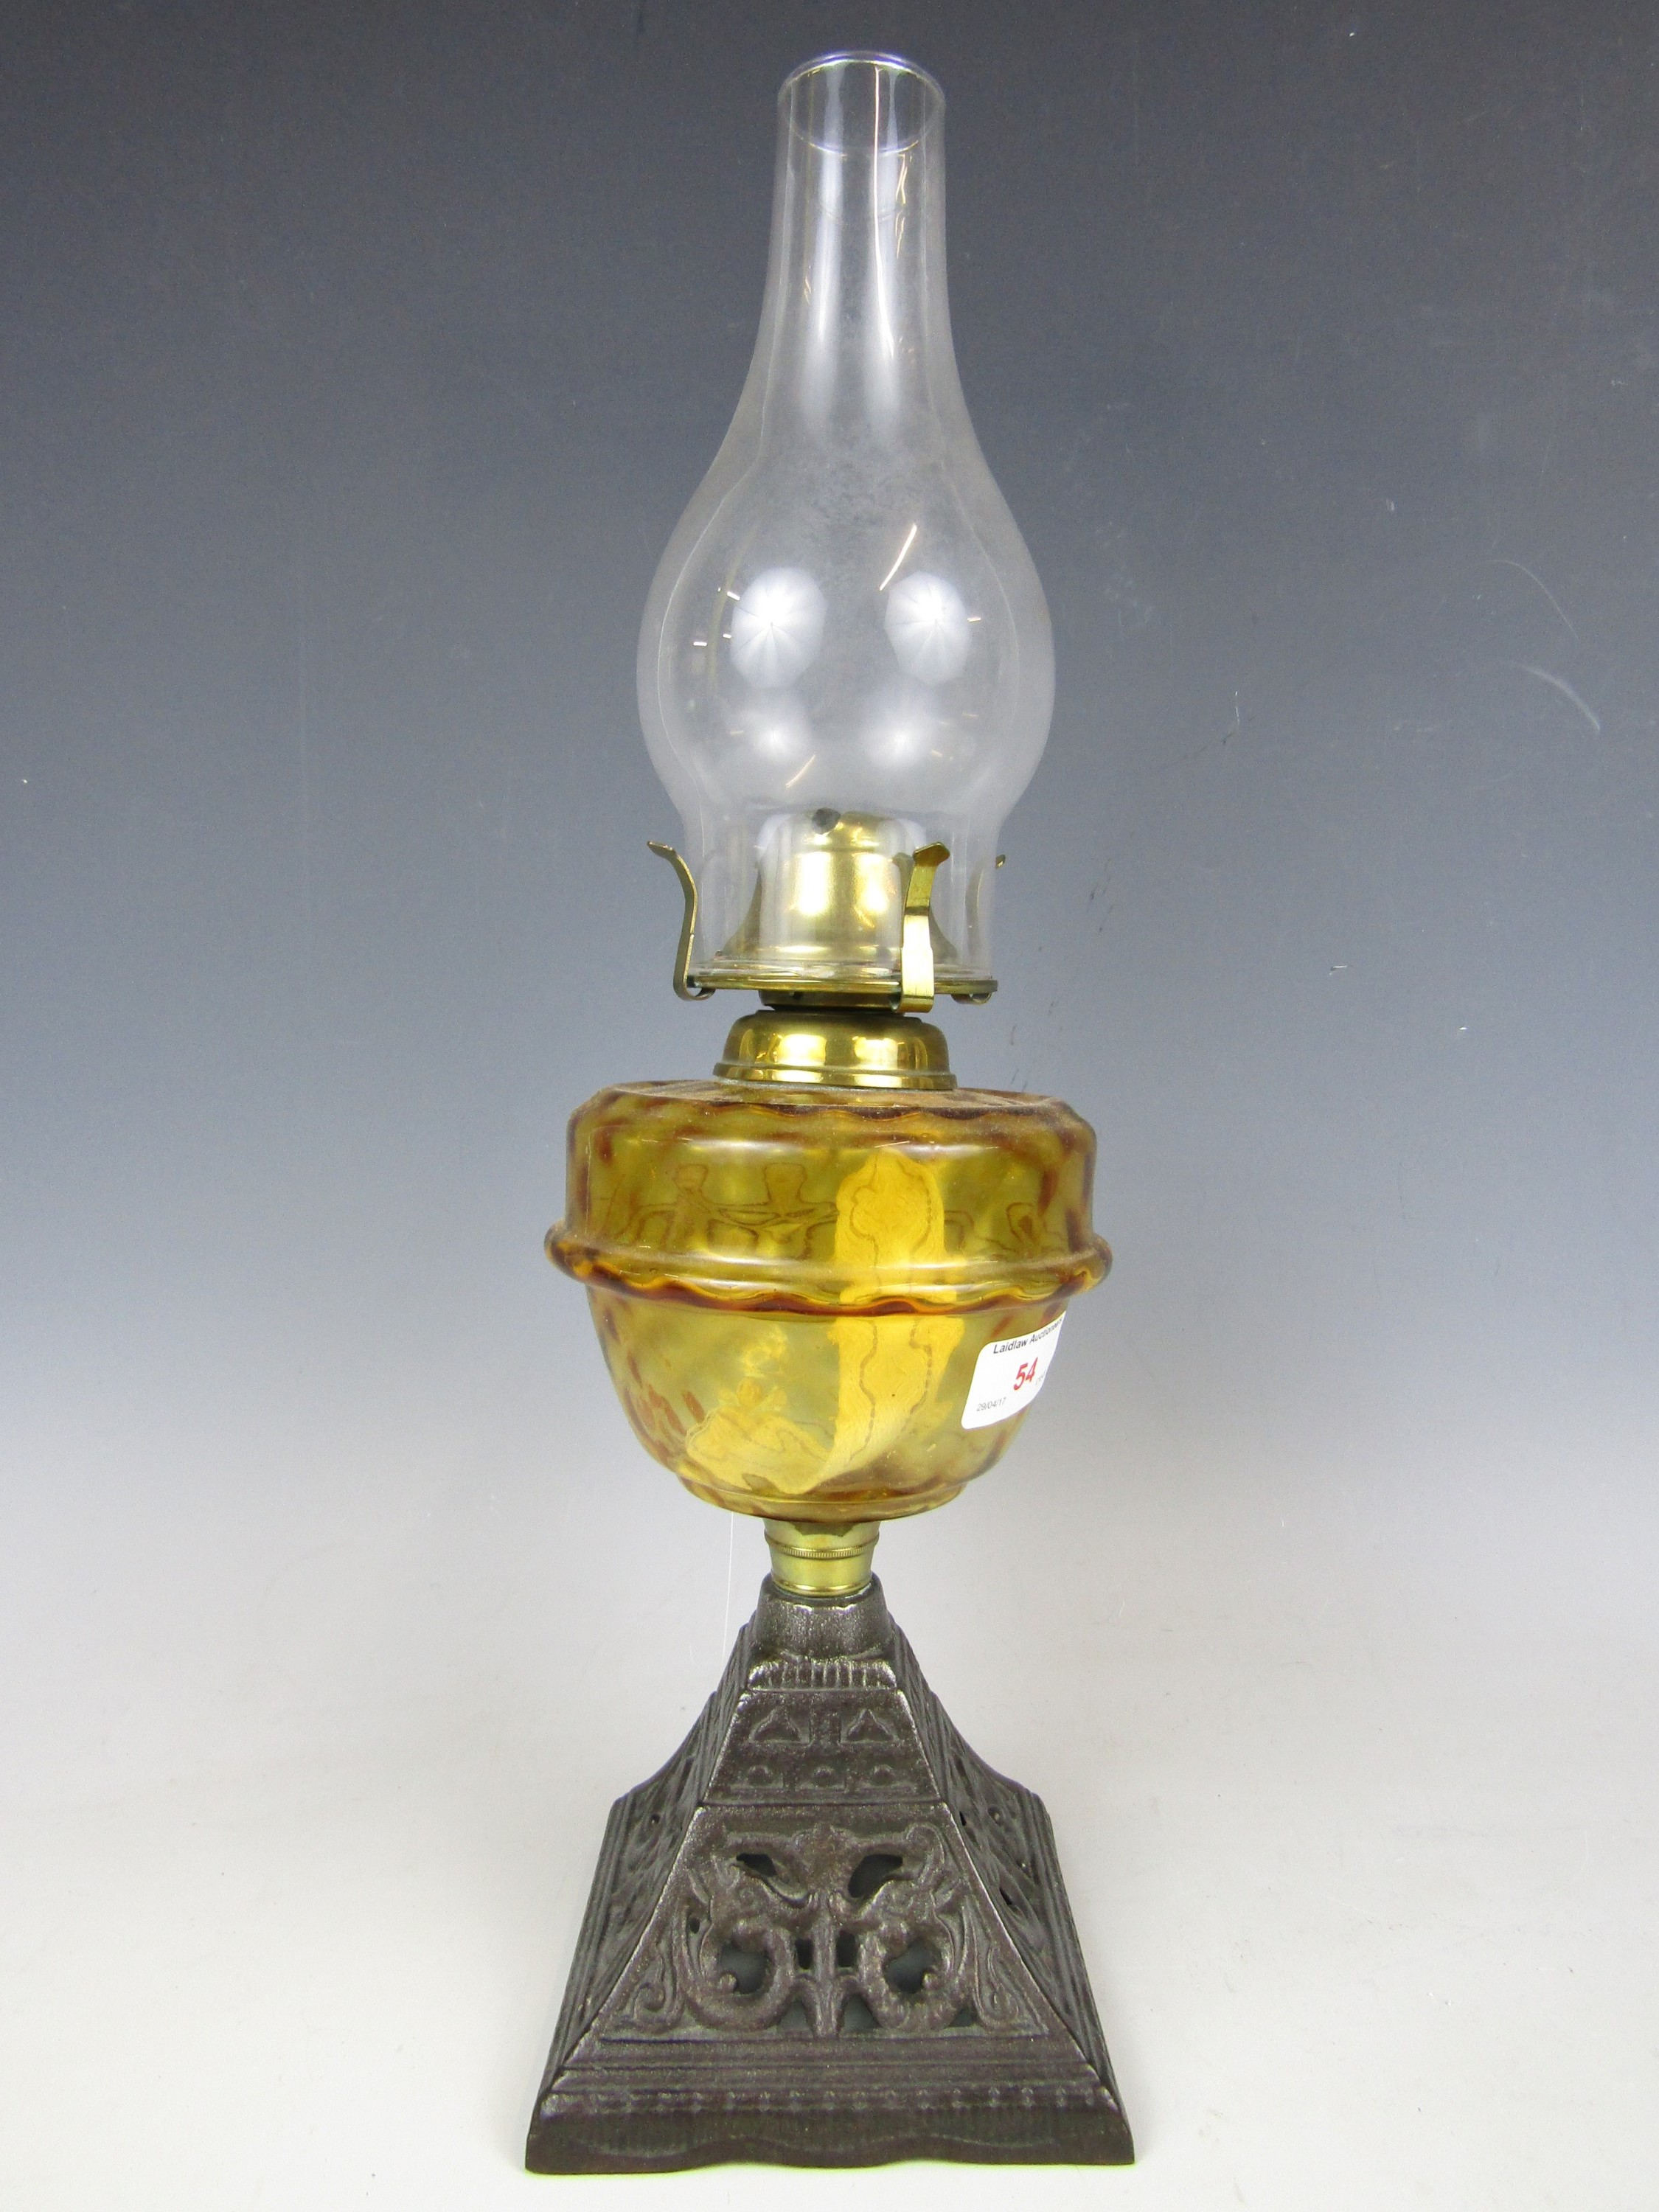 Lot 54 - A 19th Century oil lamp with amber glass reservoir and cast base